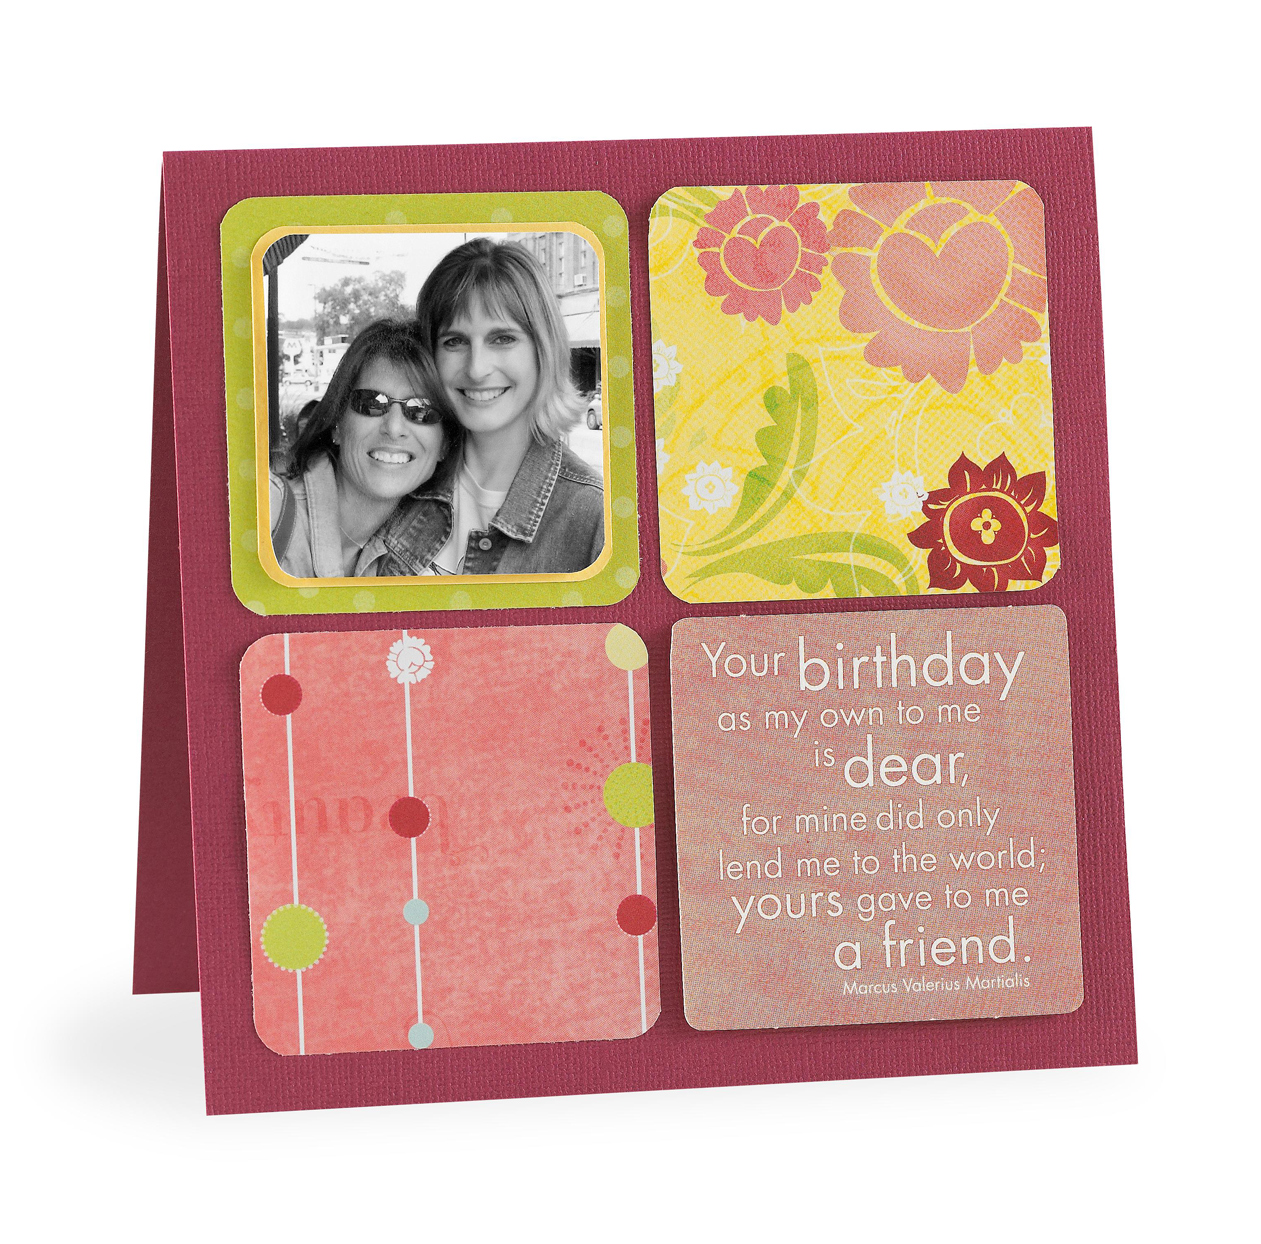 Pink card with photo and friendship quote